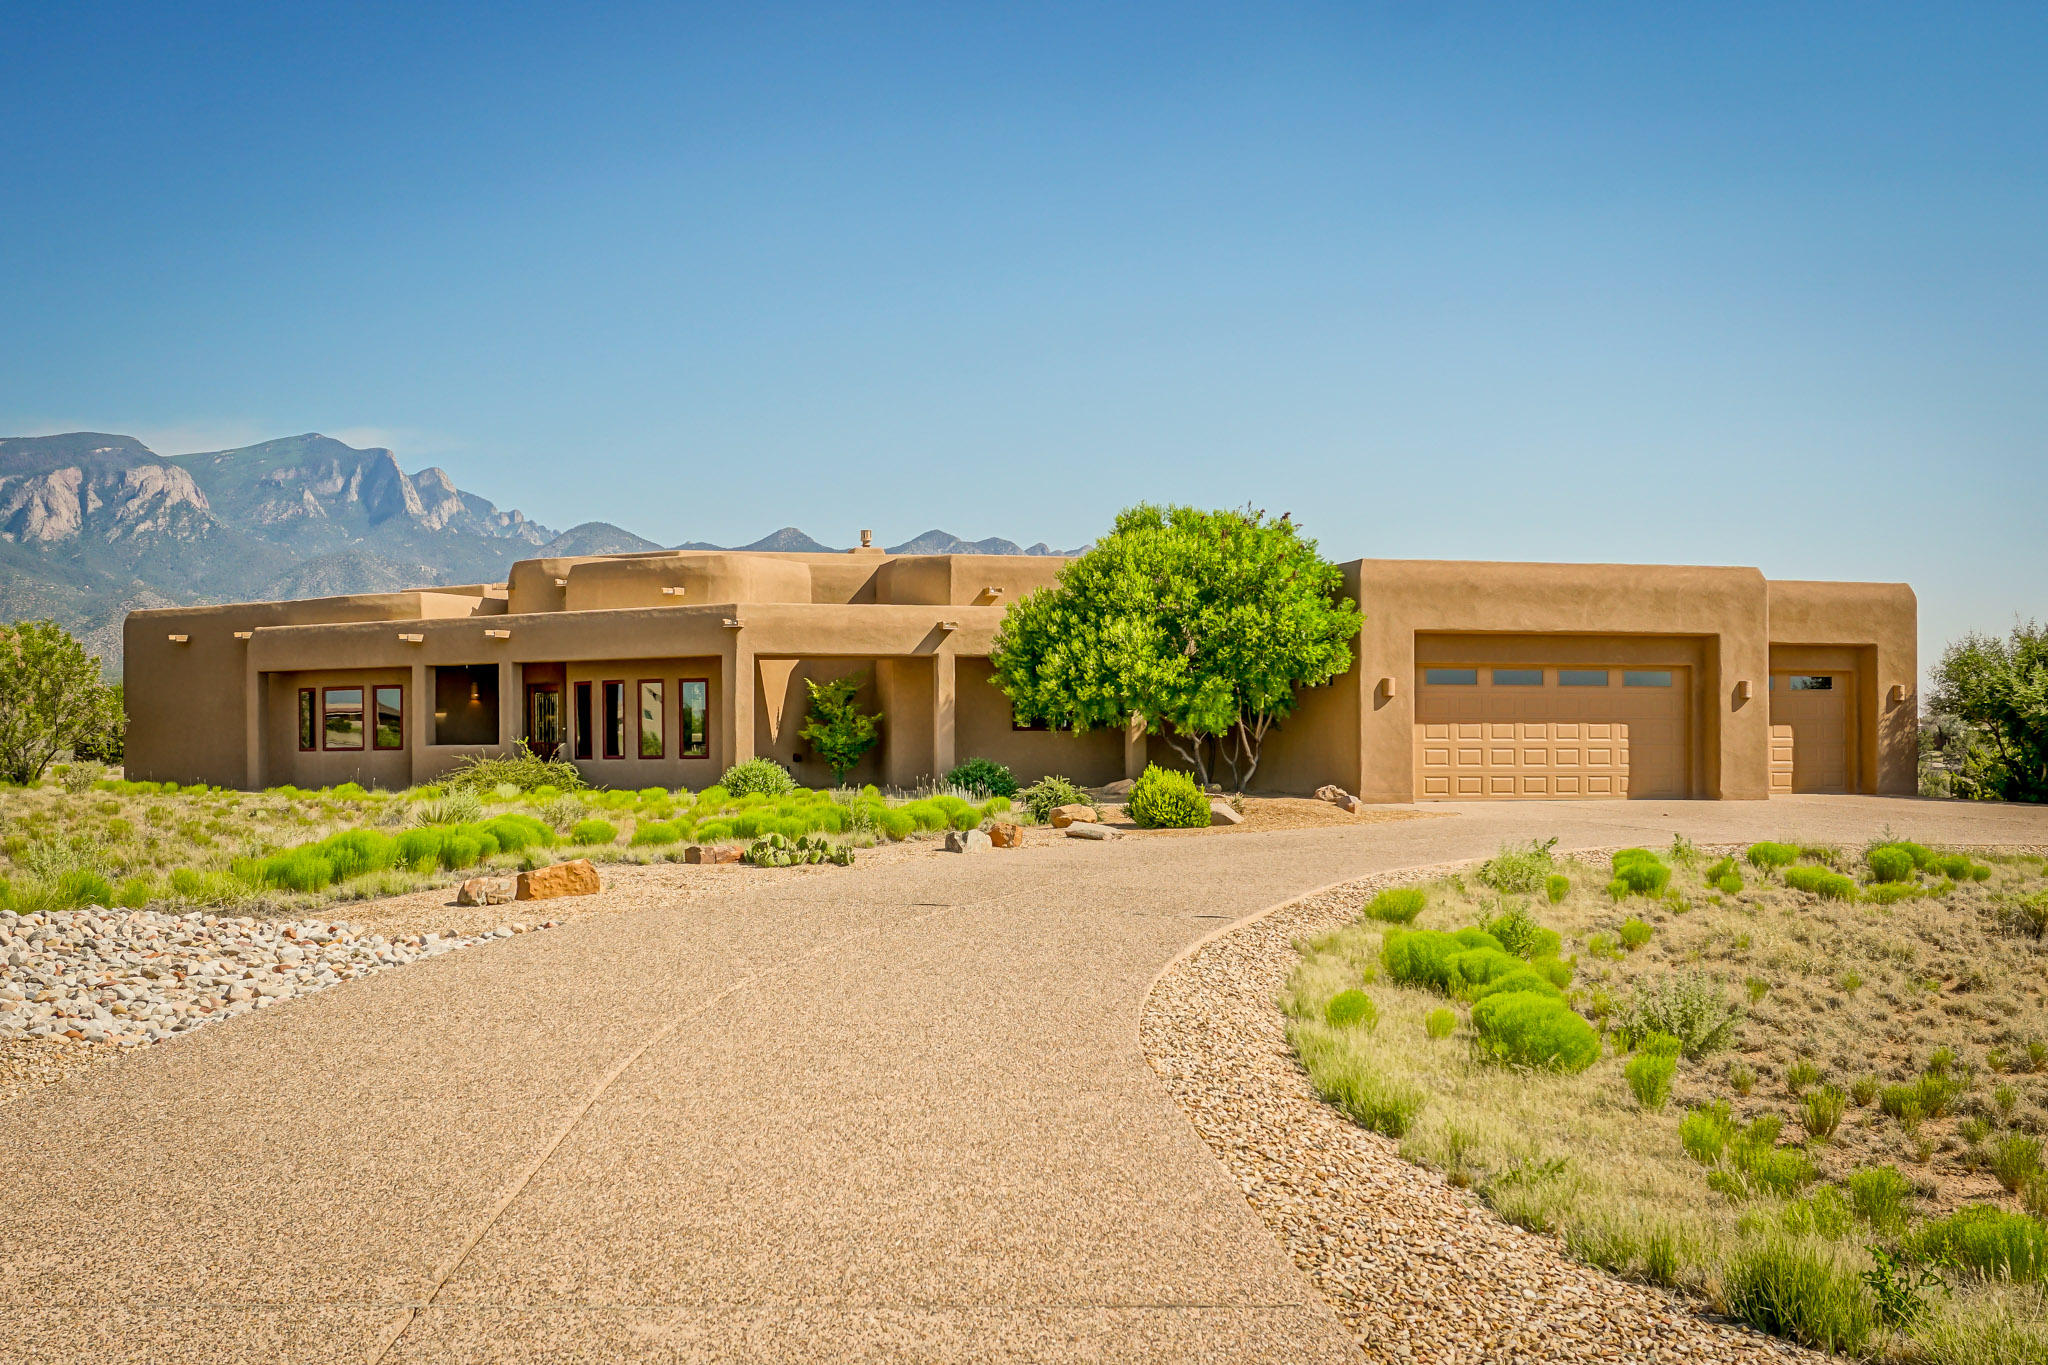 10 CEDRA COURT, PLACITAS, NM 87043